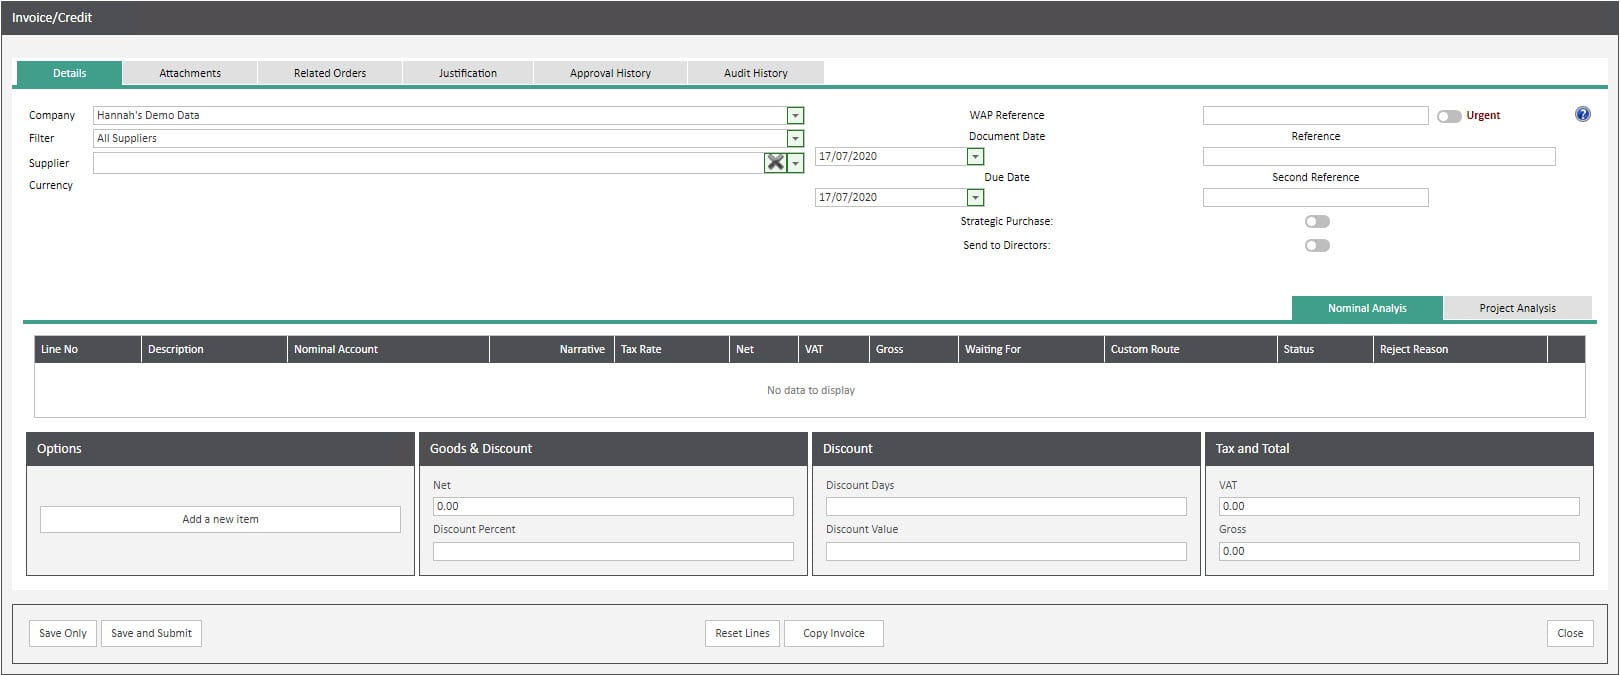 Sicon WAP Invoice Help and User Guide - Invoice HUG Section 10 Image 1